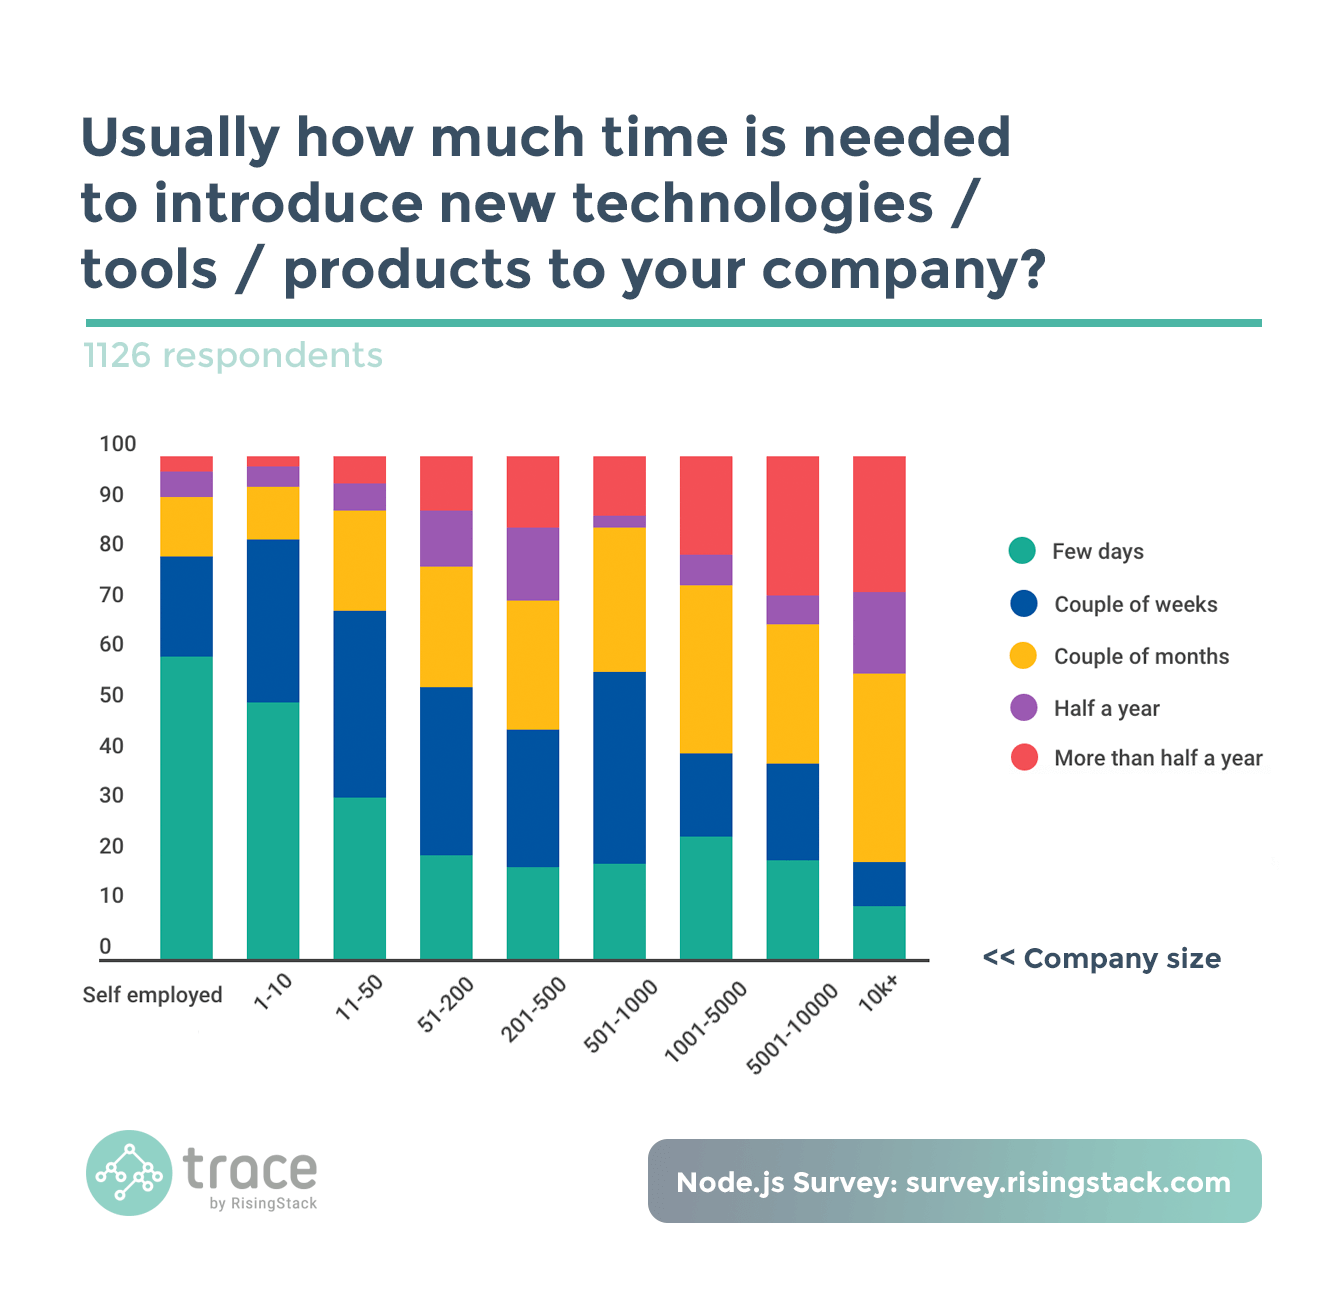 Node.js Survey - How much time is needed to introduce new technologies, tools or products to your company? A few weeks.